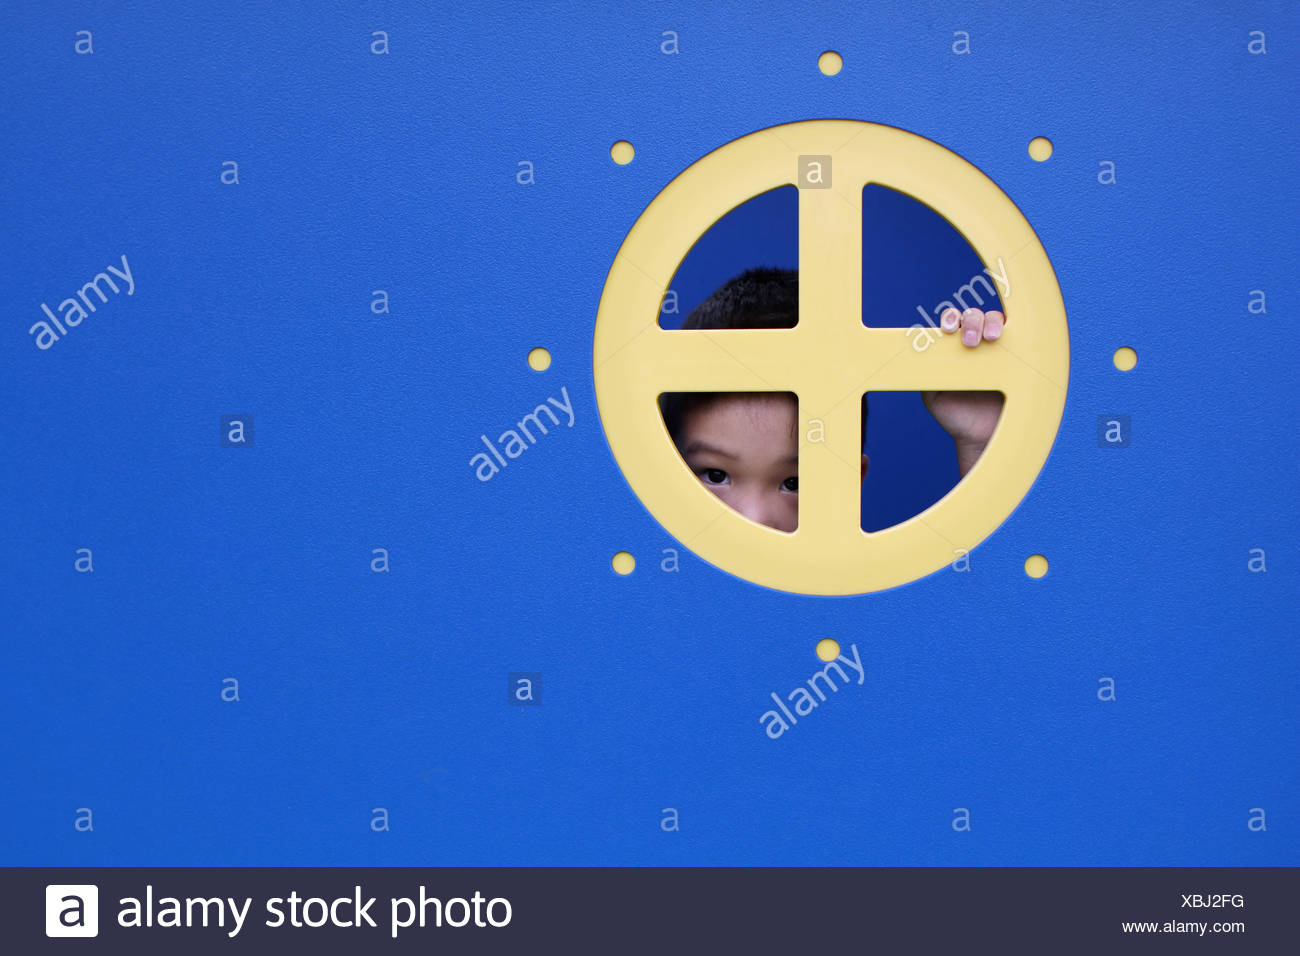 Boy peeking through the round window of a playhouse - Stock Image